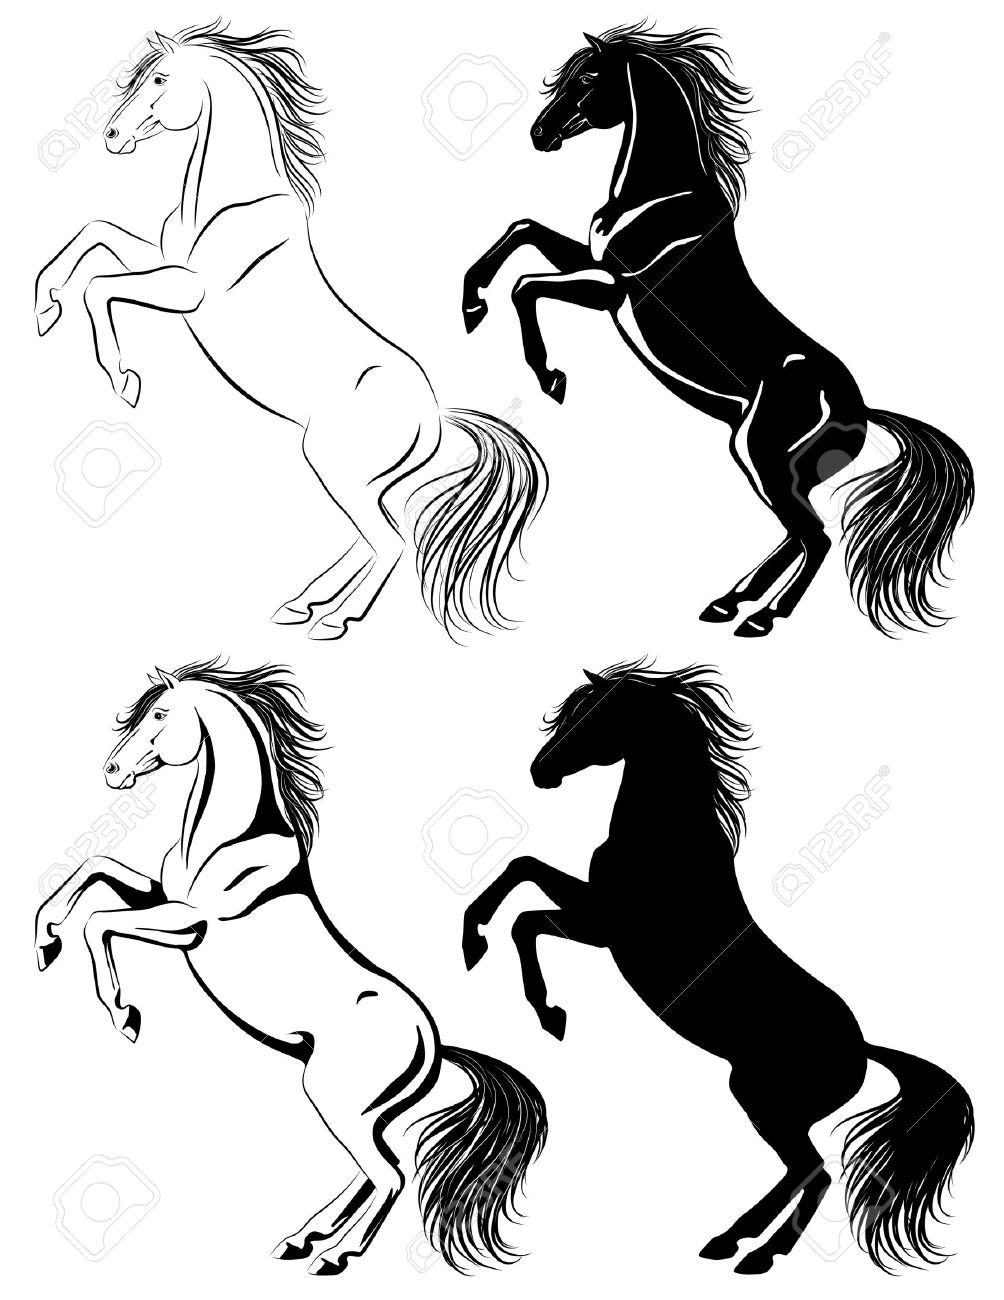 Set Of Rearing Horse Illustrations In Different Techniques Royalty